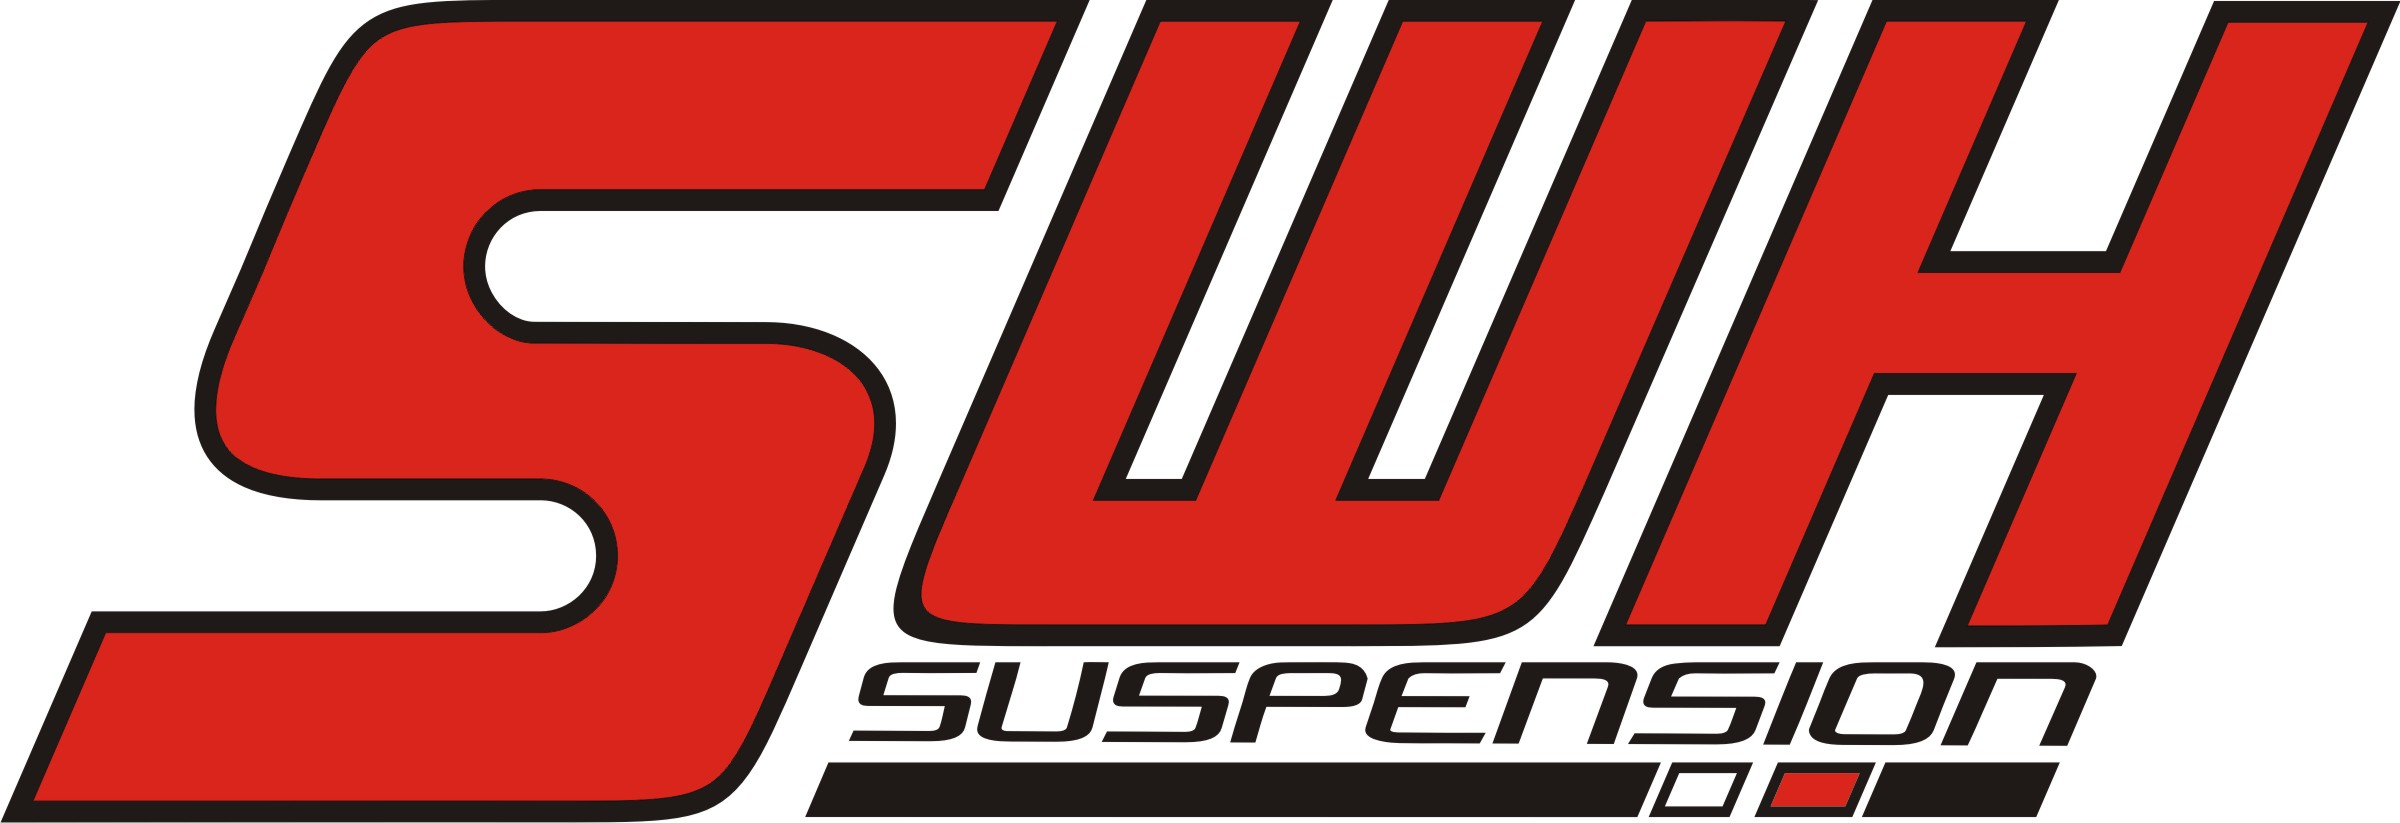 SWH Suspension